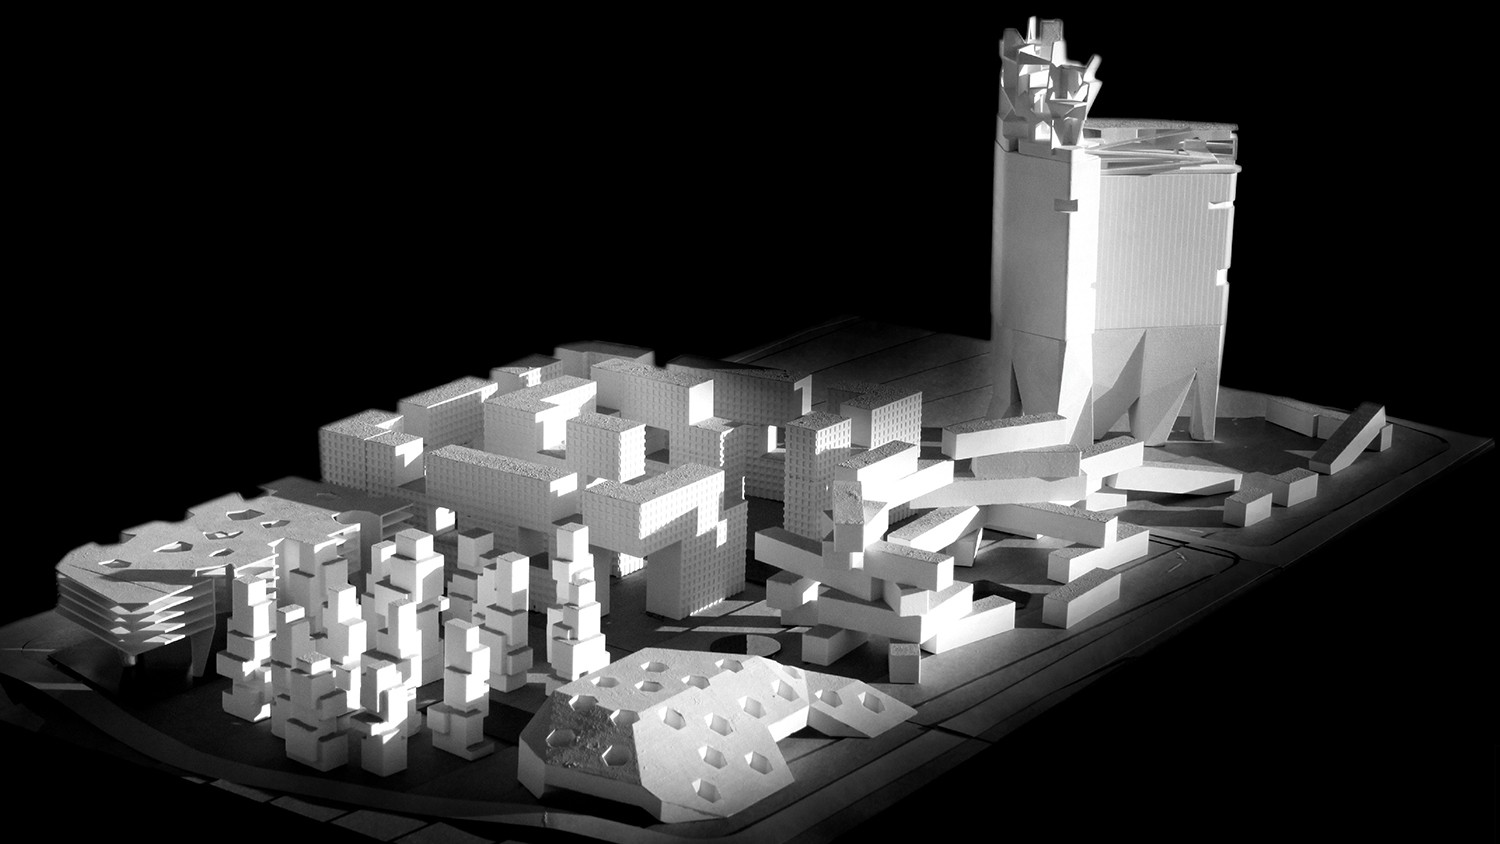 https://s3.us-east-2.amazonaws.com/steven-holl/uploads/projects/project-images/StevenHollArchitects_Dongguan_24_WH.jpg